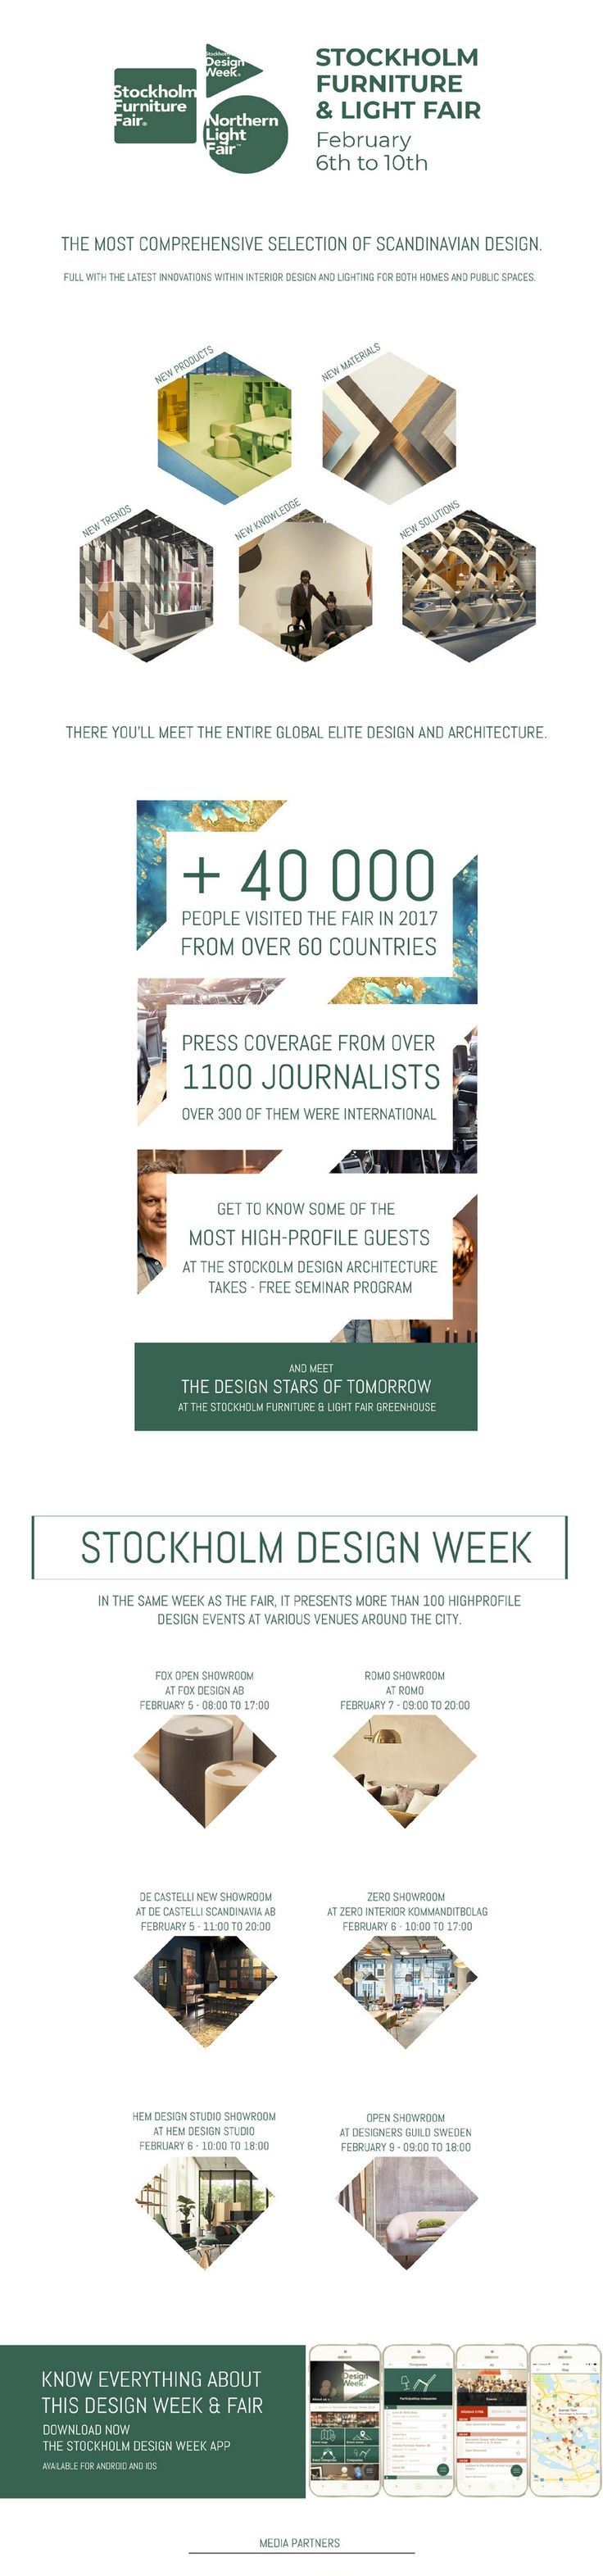 Learn More About The Stockholm Design Week 2018 http://mydesignagenda.com/learn-more-about-the-stockholm-design-week-2018/